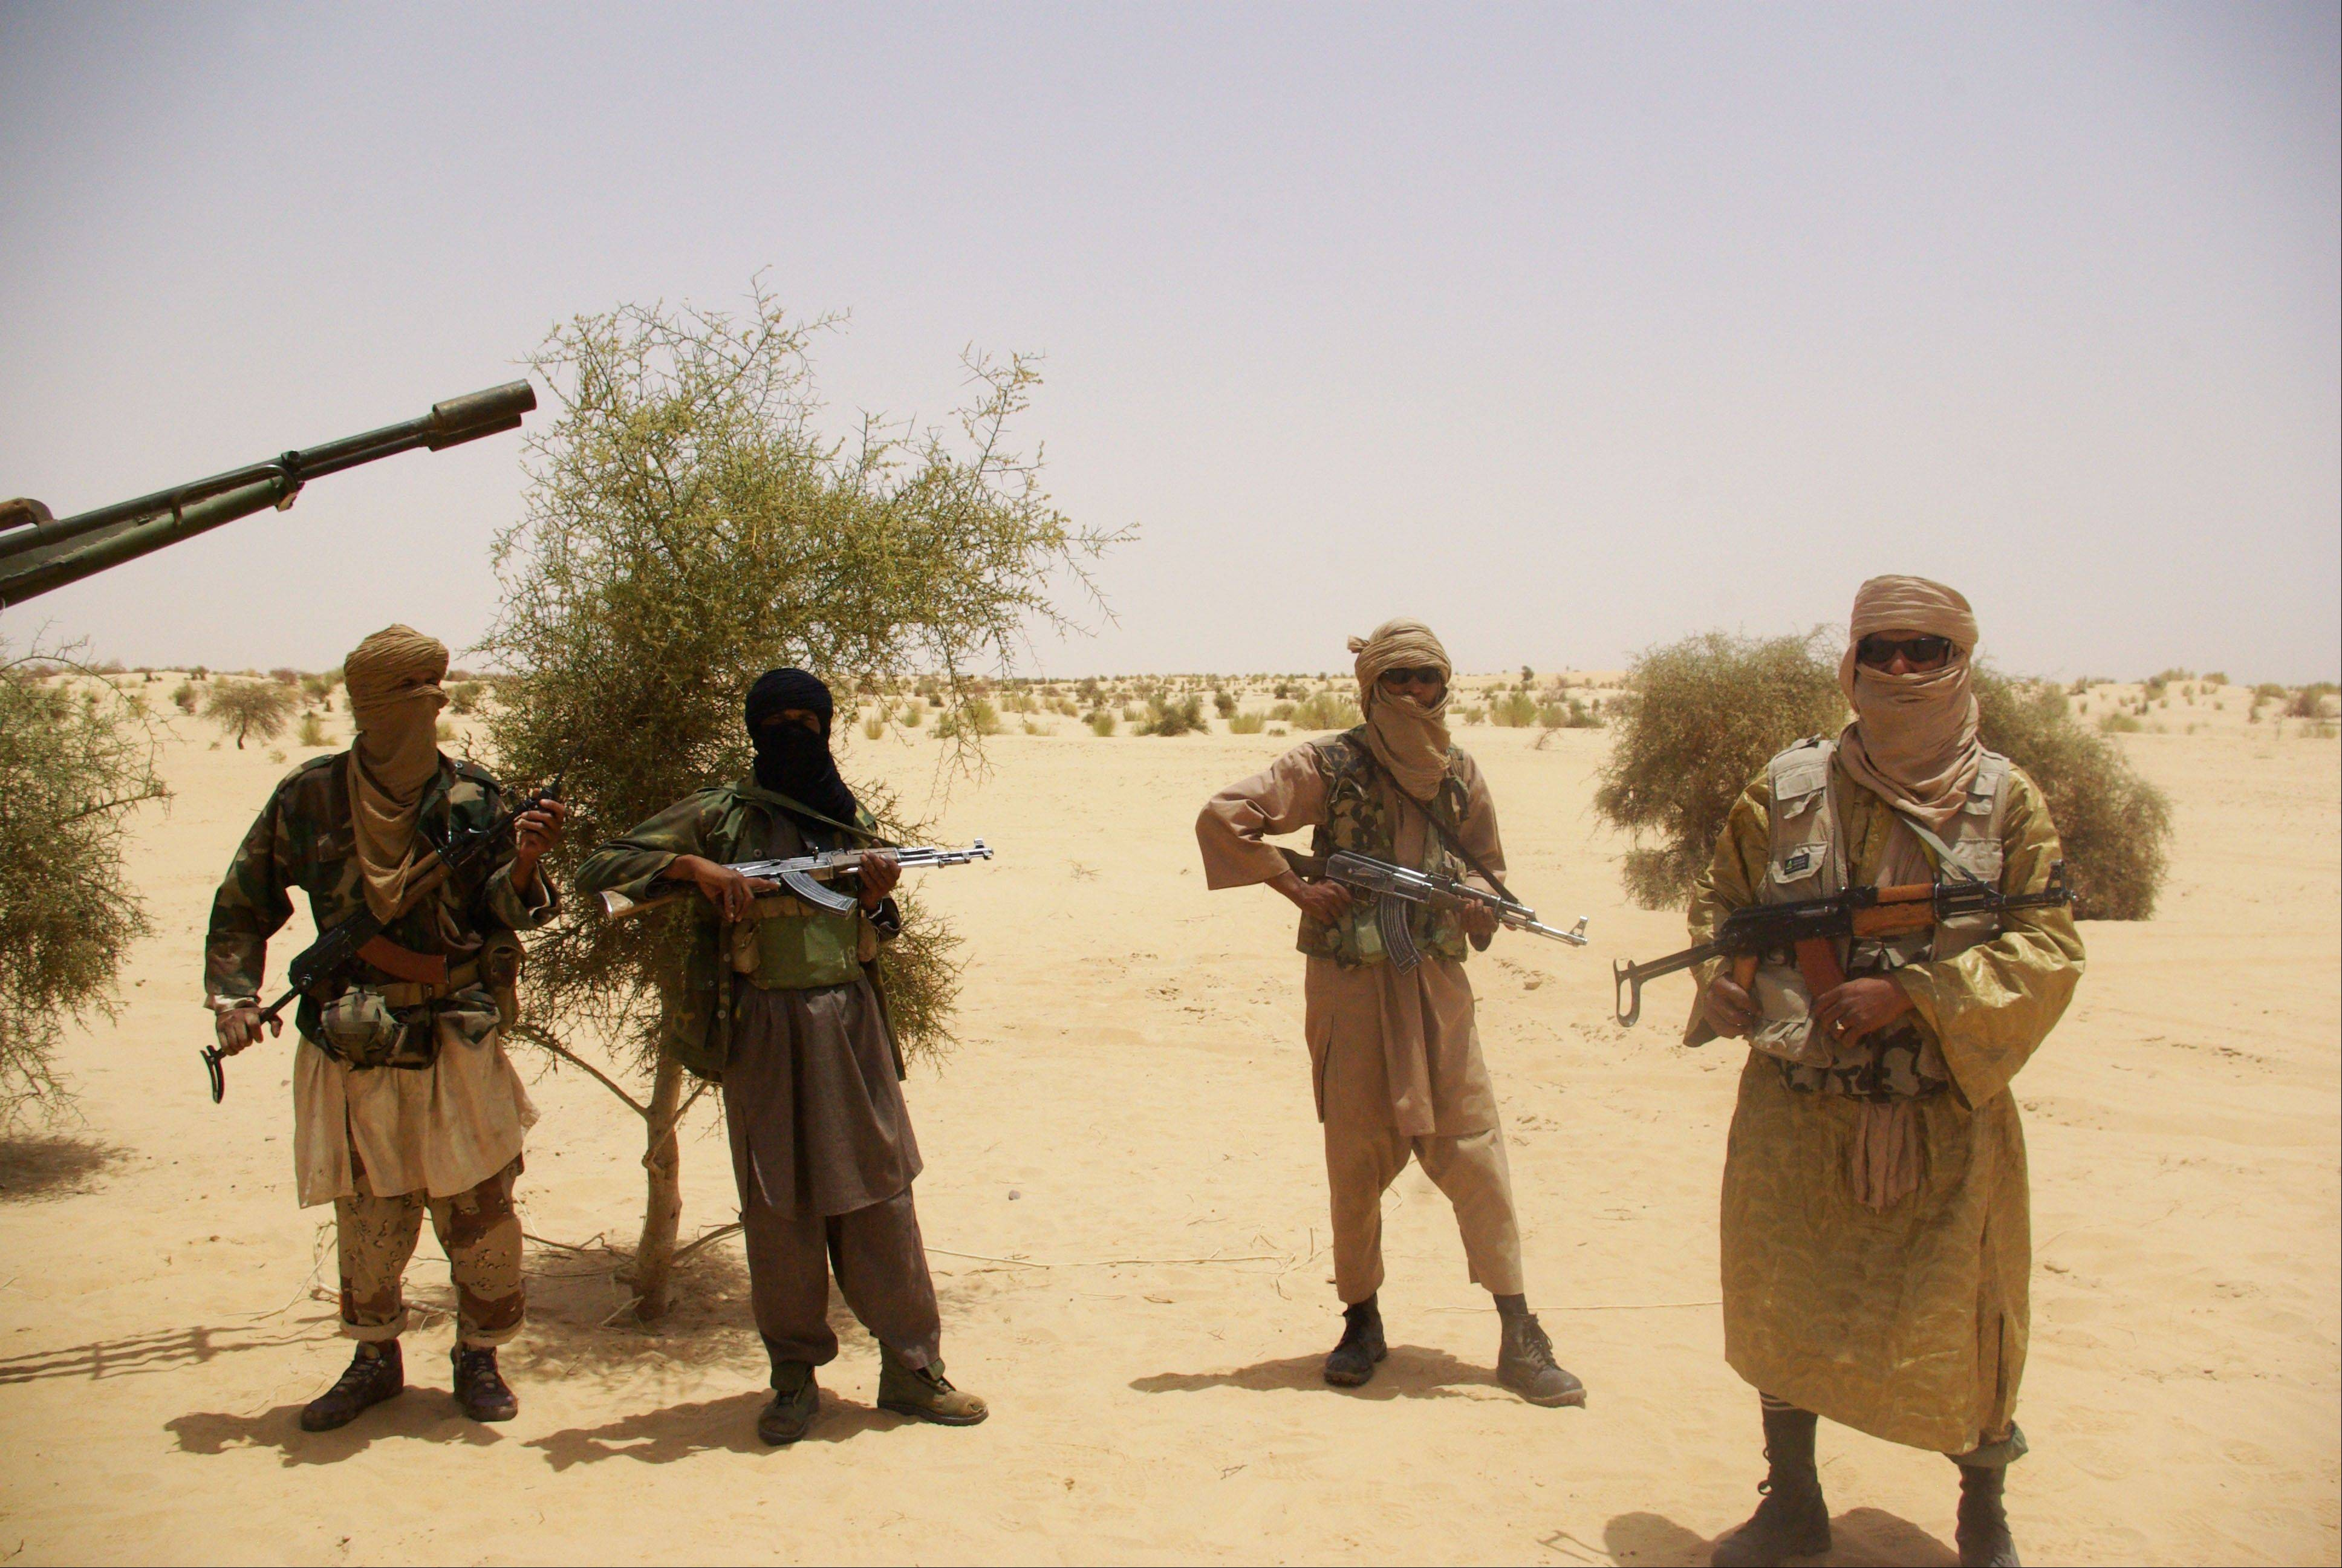 Associated Press/April 24, 2012Fighters from Islamist group Ansar Dine stand guard during a hostage handover in the desert outside Timbuktu, Mali.